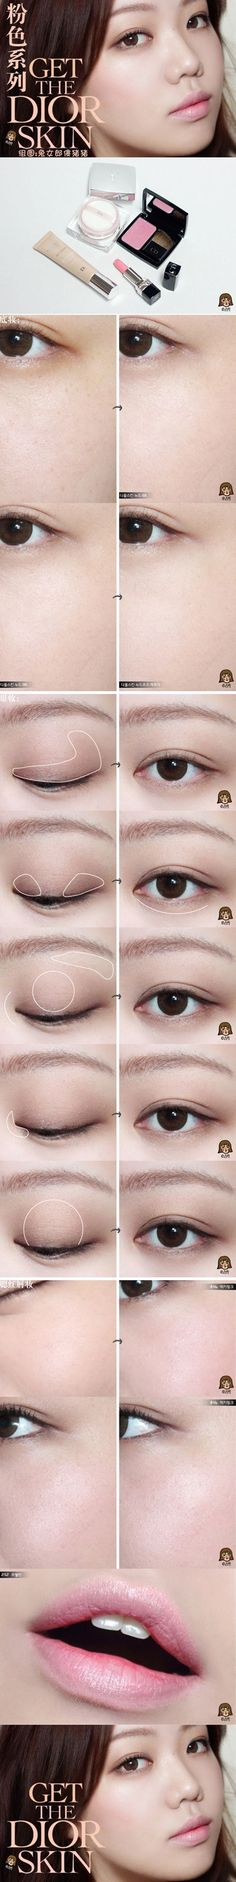 Eye Korean Natural Makeup Asian Beauty 67 Ideas For 2019 # colorful … - therezepte sites Asian Makeup Looks, Korean Natural Makeup, Korean Makeup Look, Celebrity Makeup Looks, Asian Eye Makeup, Asian Makeup Tutorials, Beauty Tutorials, Asian Inspired Makeup, Red Lipstick Makeup